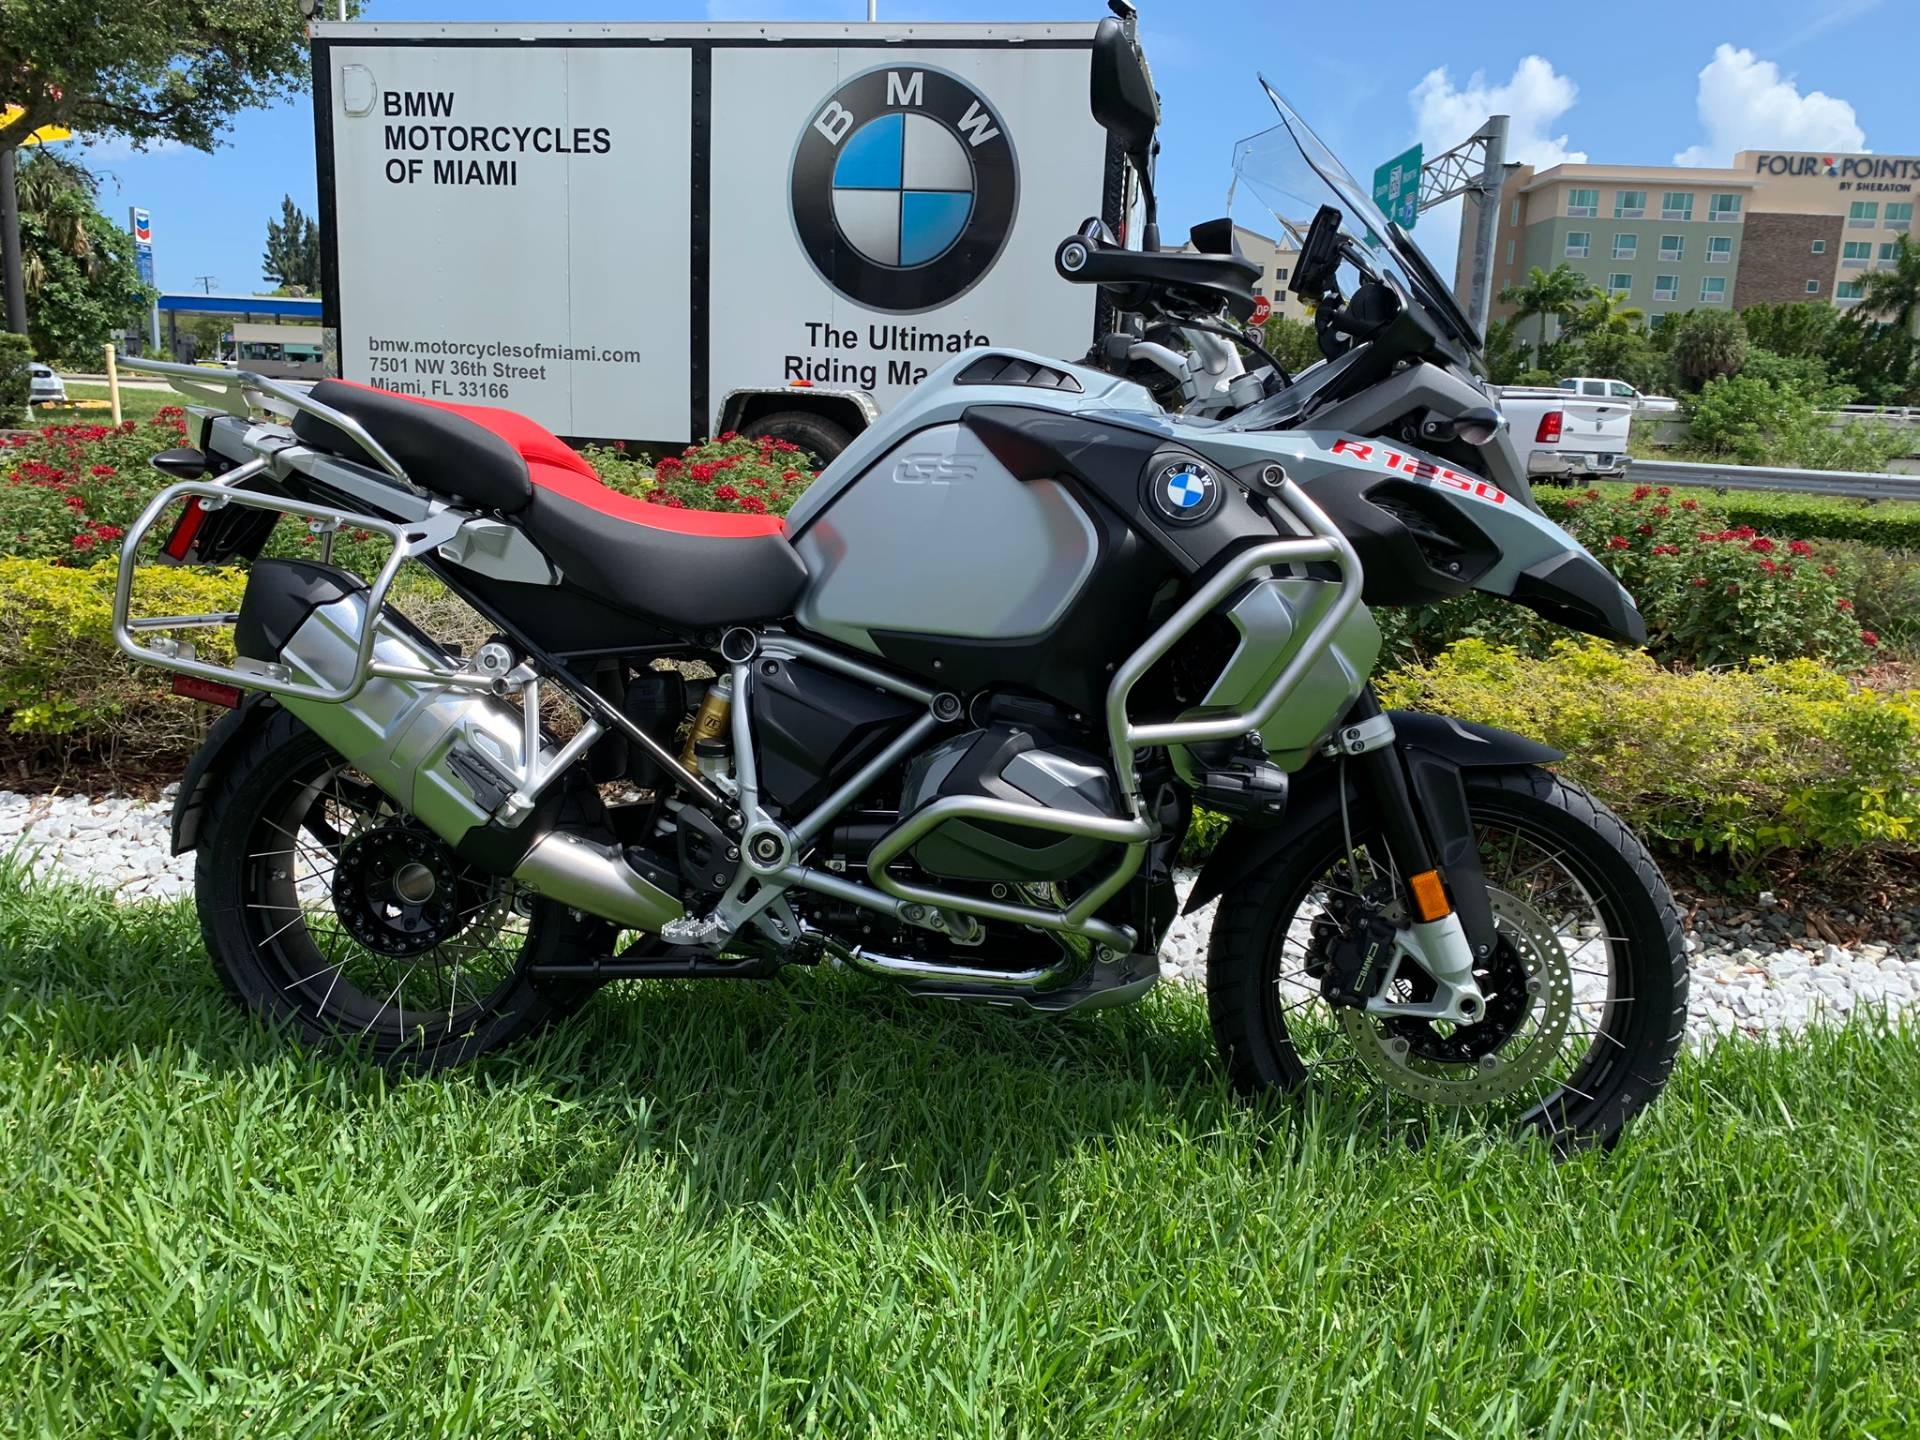 New 2019 BMW R 1250 GSA for sale, New BMW for sale R 1250GSA, New BMW Motorcycle R1250GSA for sale, new BMW 1250GS Adventure, R1250GS Adventure, Adventure. BMW Motorcycles of Miami, Motorcycles of Miami, Motorcycles Miami, New Motorcycles, Used Motorcycles, pre-owned. #BMWMotorcyclesOfMiami #Motorcy - Photo 27